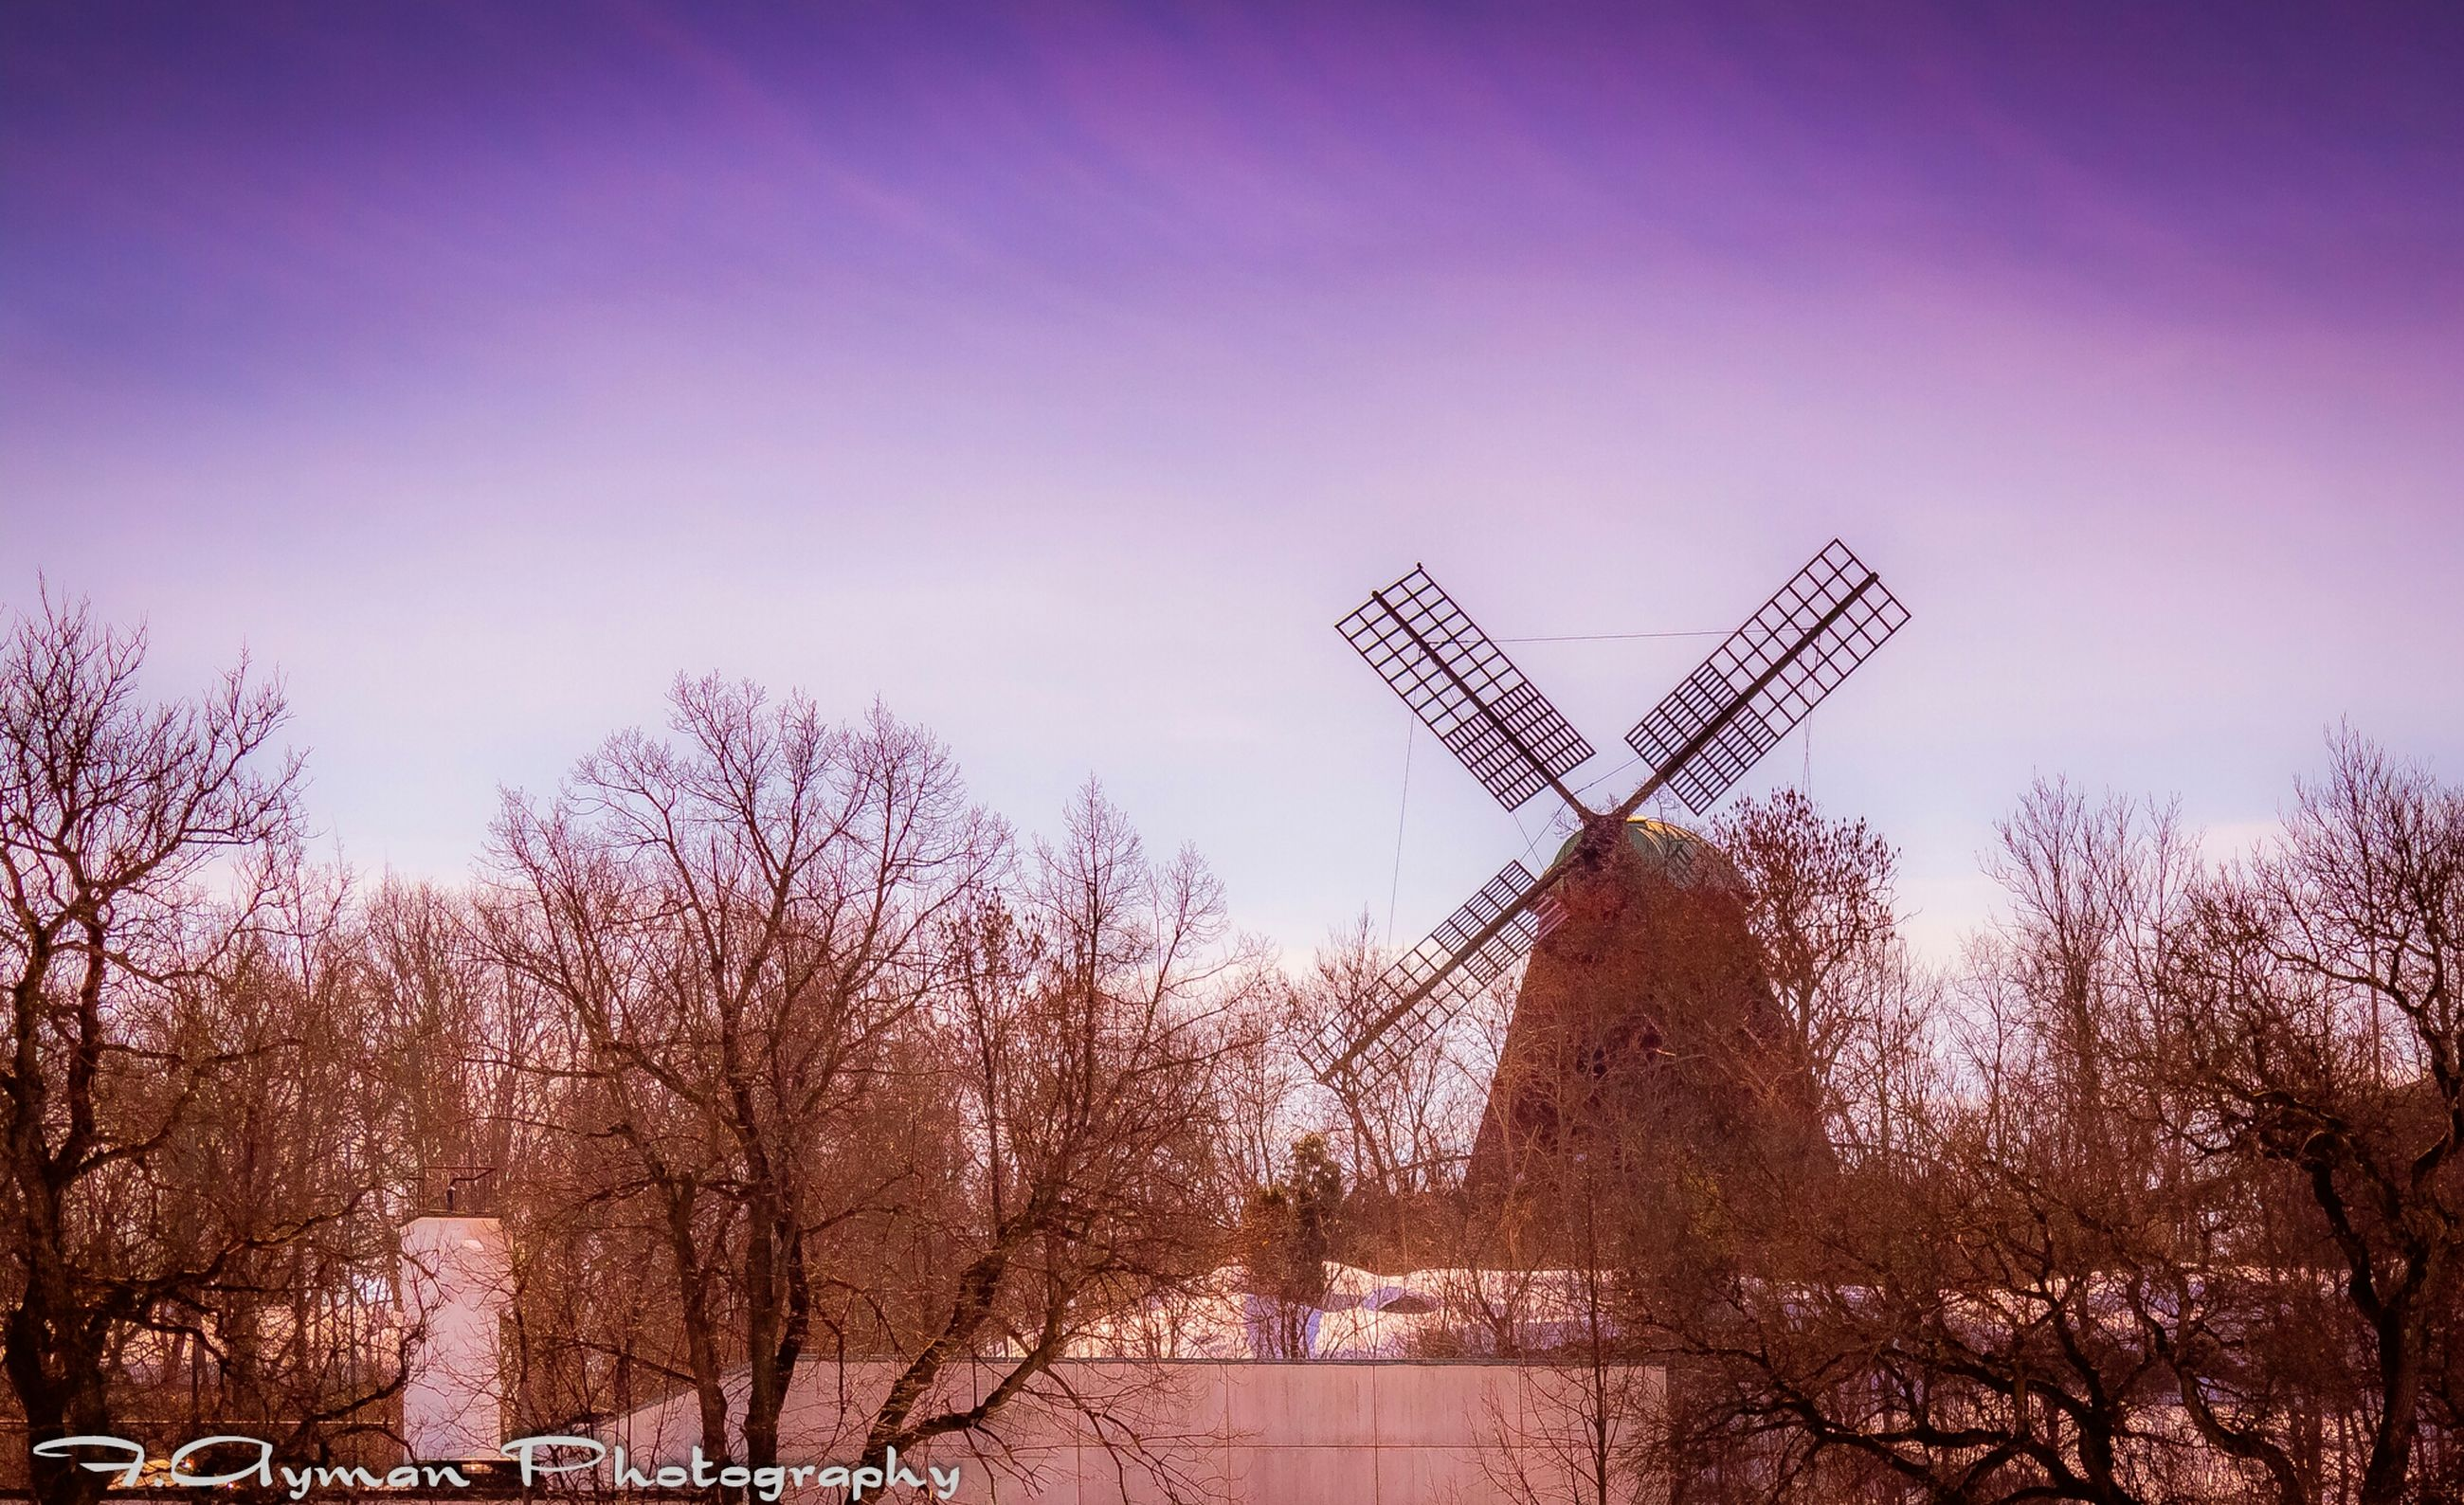 built structure, architecture, tree, clear sky, low angle view, building exterior, sky, crane - construction machinery, traditional windmill, construction site, outdoors, copy space, bare tree, day, no people, fuel and power generation, wind power, nature, dusk, development